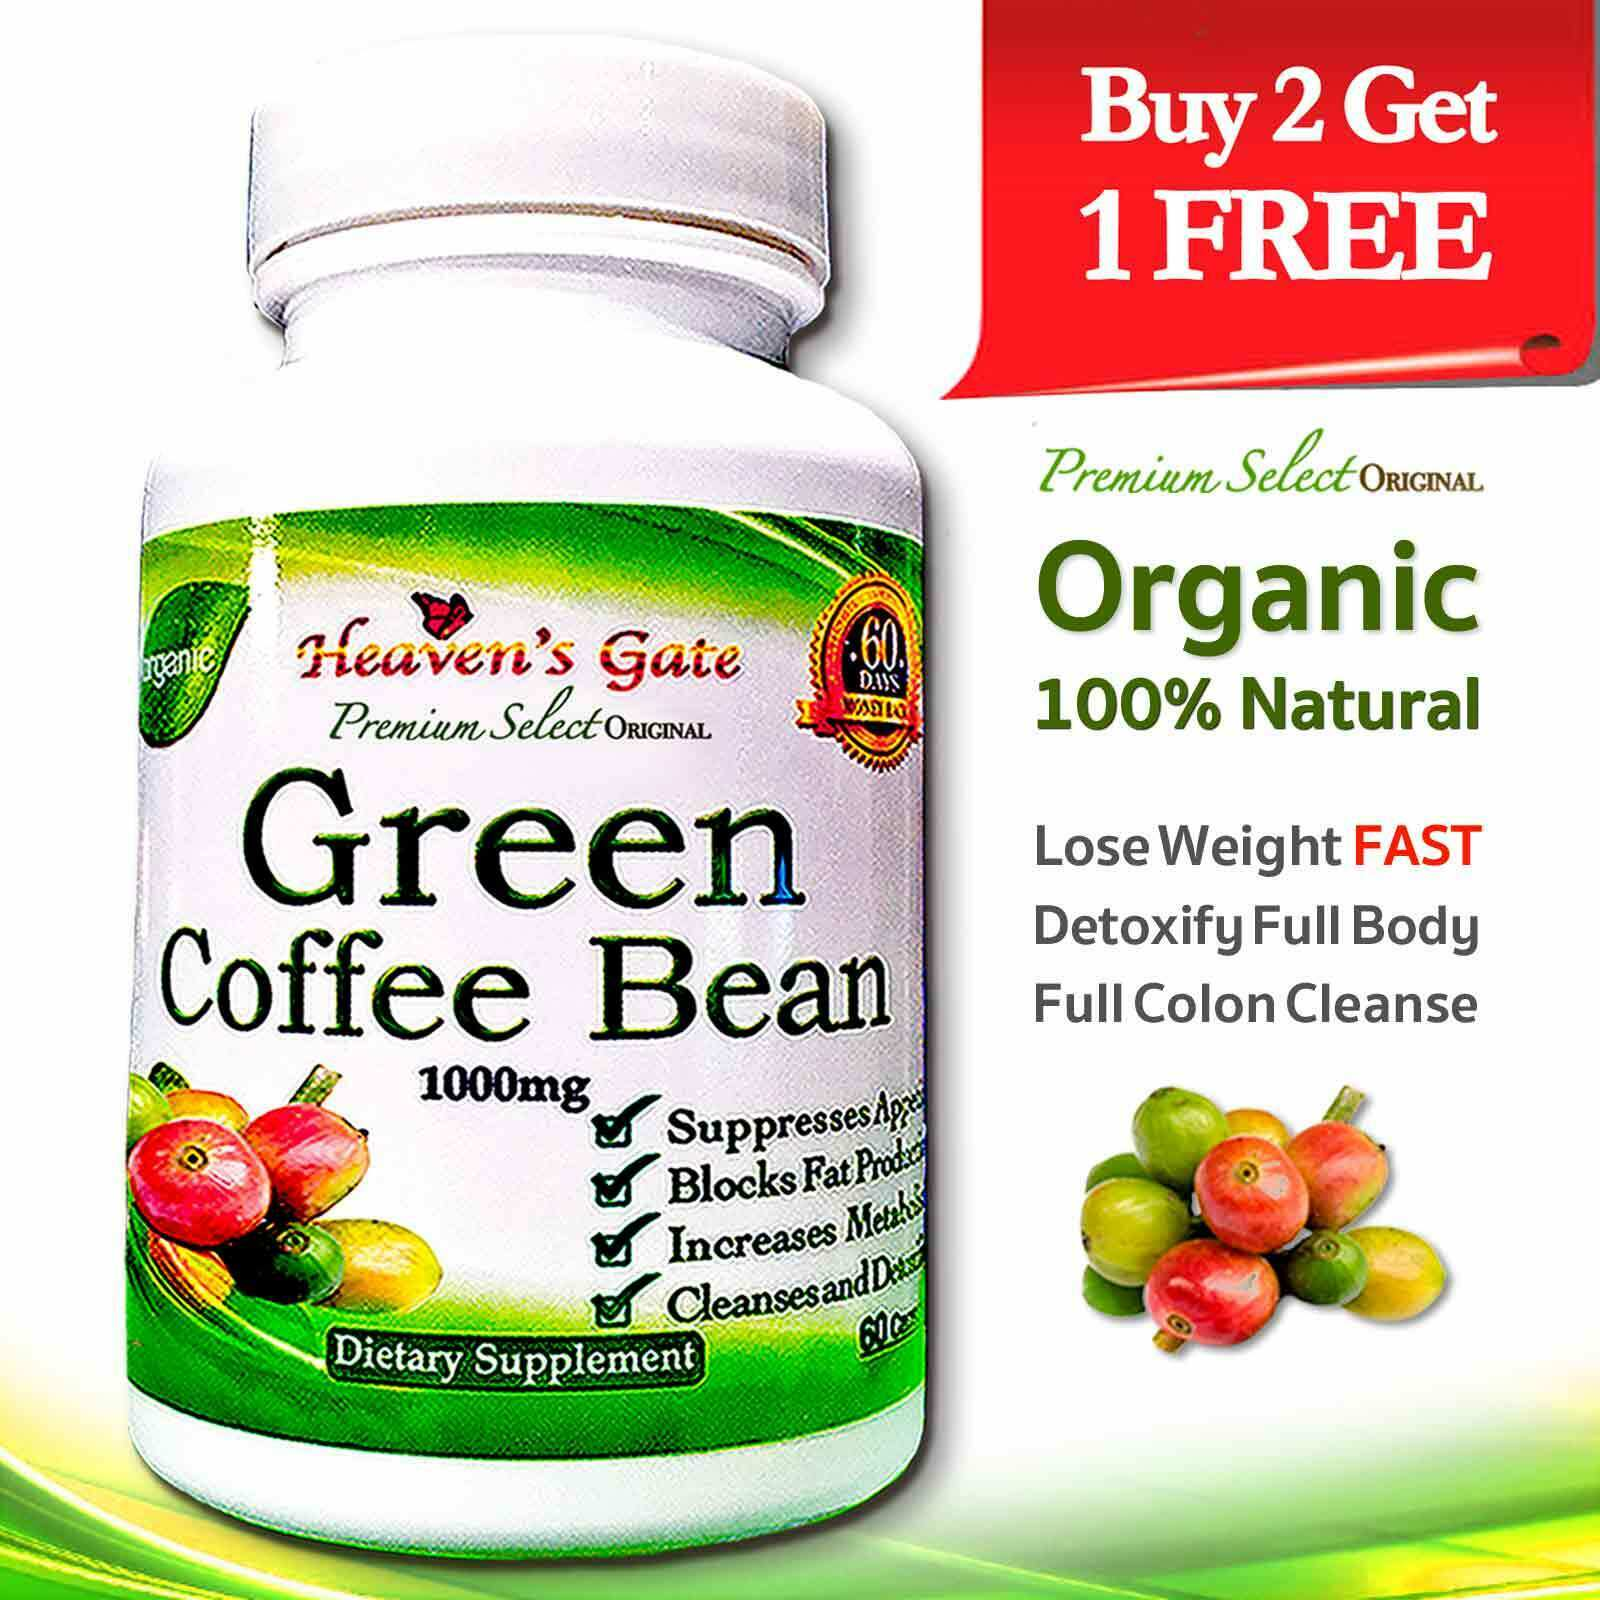 1000mg Green Coffee Bean Diet Extract Slimming Pills Weight Loss